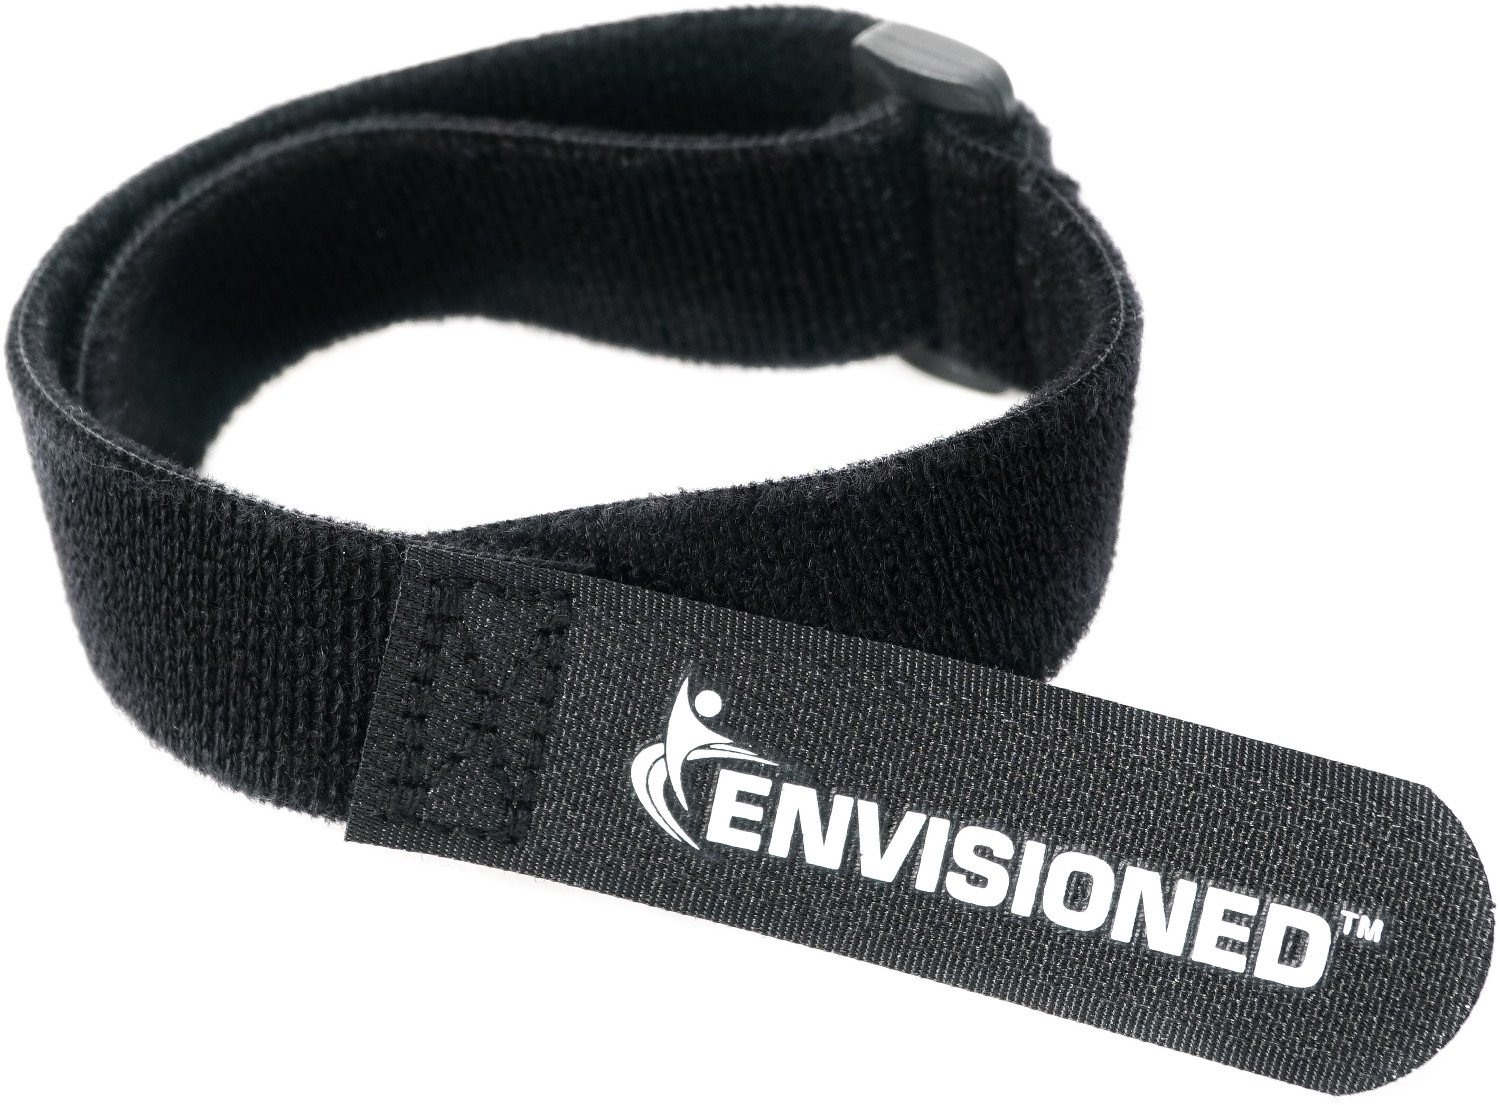 Velour Cinch Straps 2' x 30' - 6 Pack, Soft Touch Microfiber Reusable Hook and Loop Envisioned Products Inc.